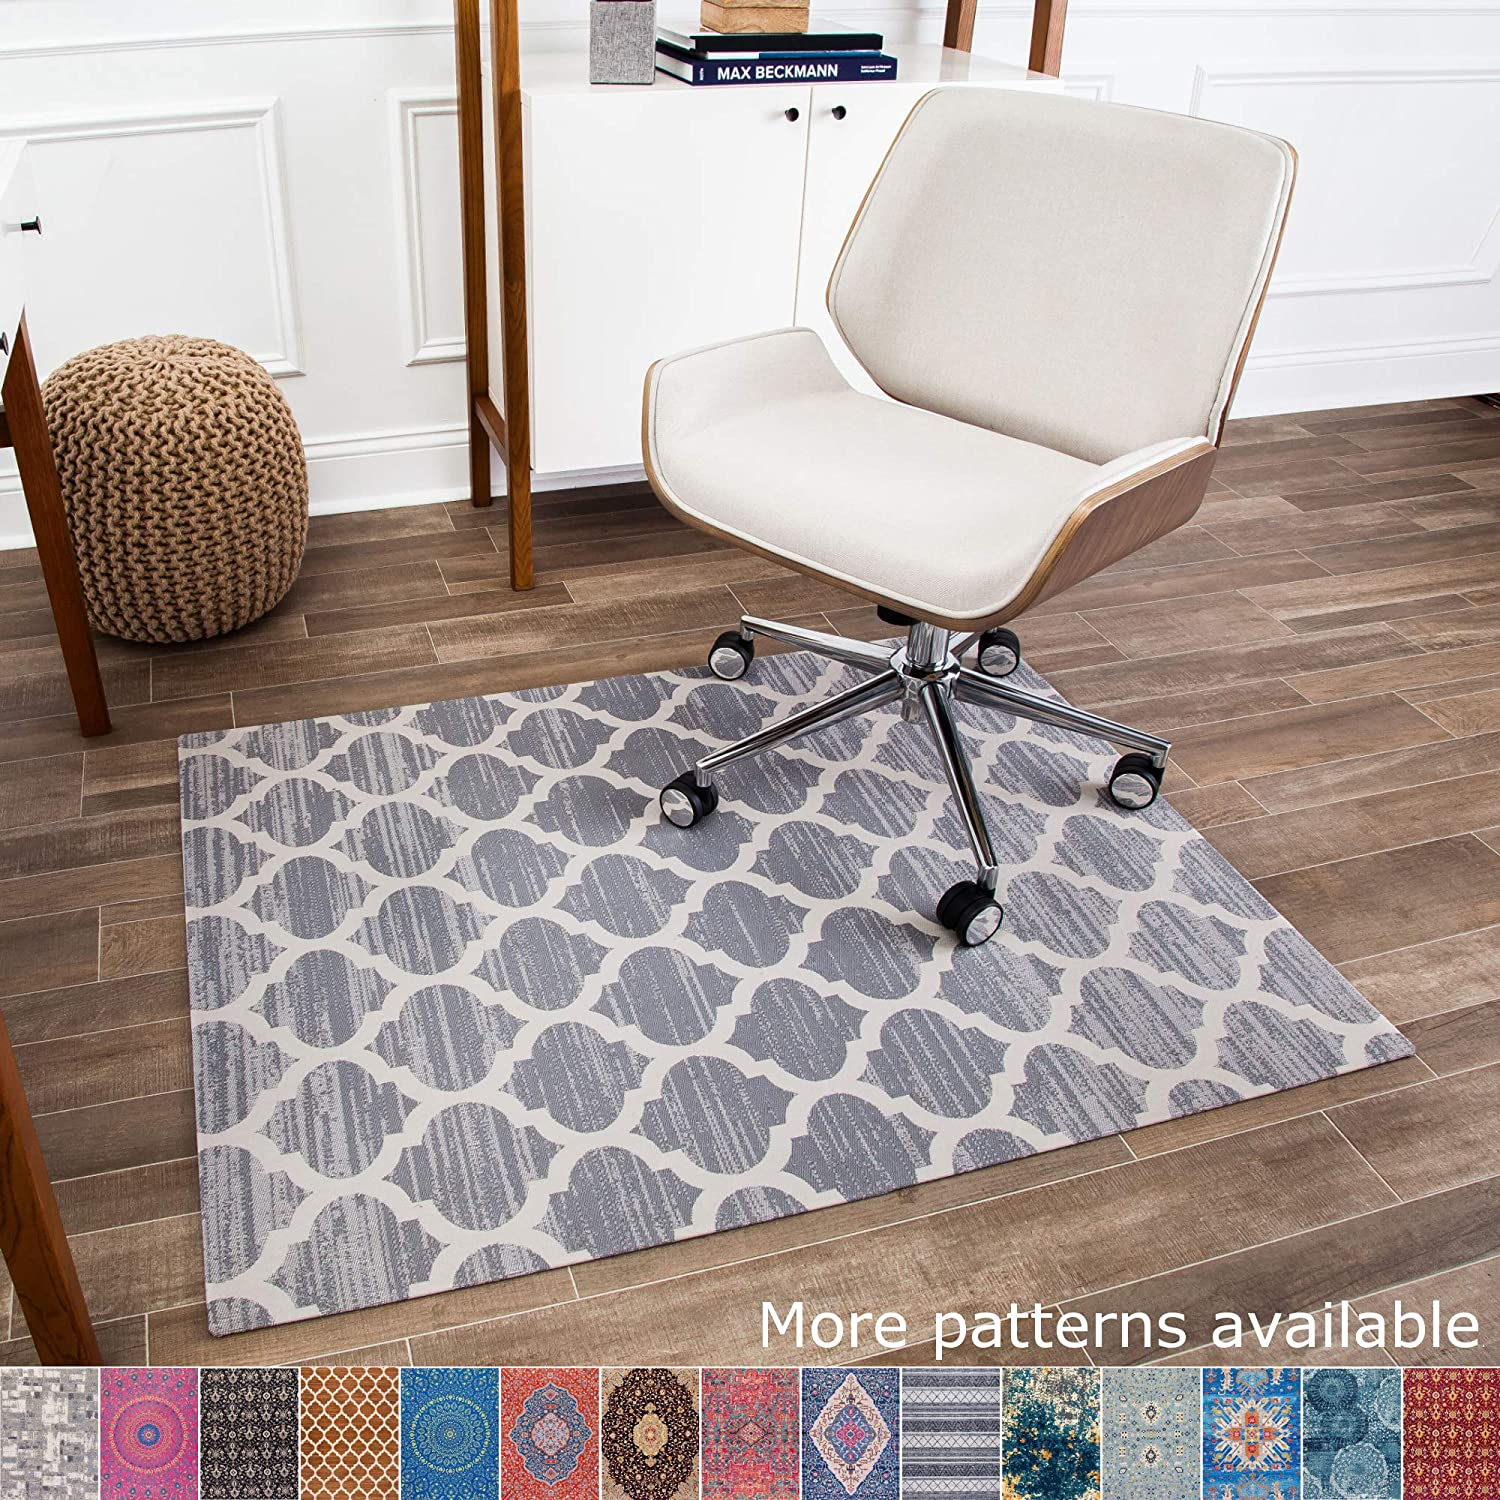 """Anji Mountain Chair Mat Rug'd Collection, 1/4"""" Thick - For Low Pile Carpets & Hard Surfaces, Mitte AMB9011, Gray and Ivory Trellis"""